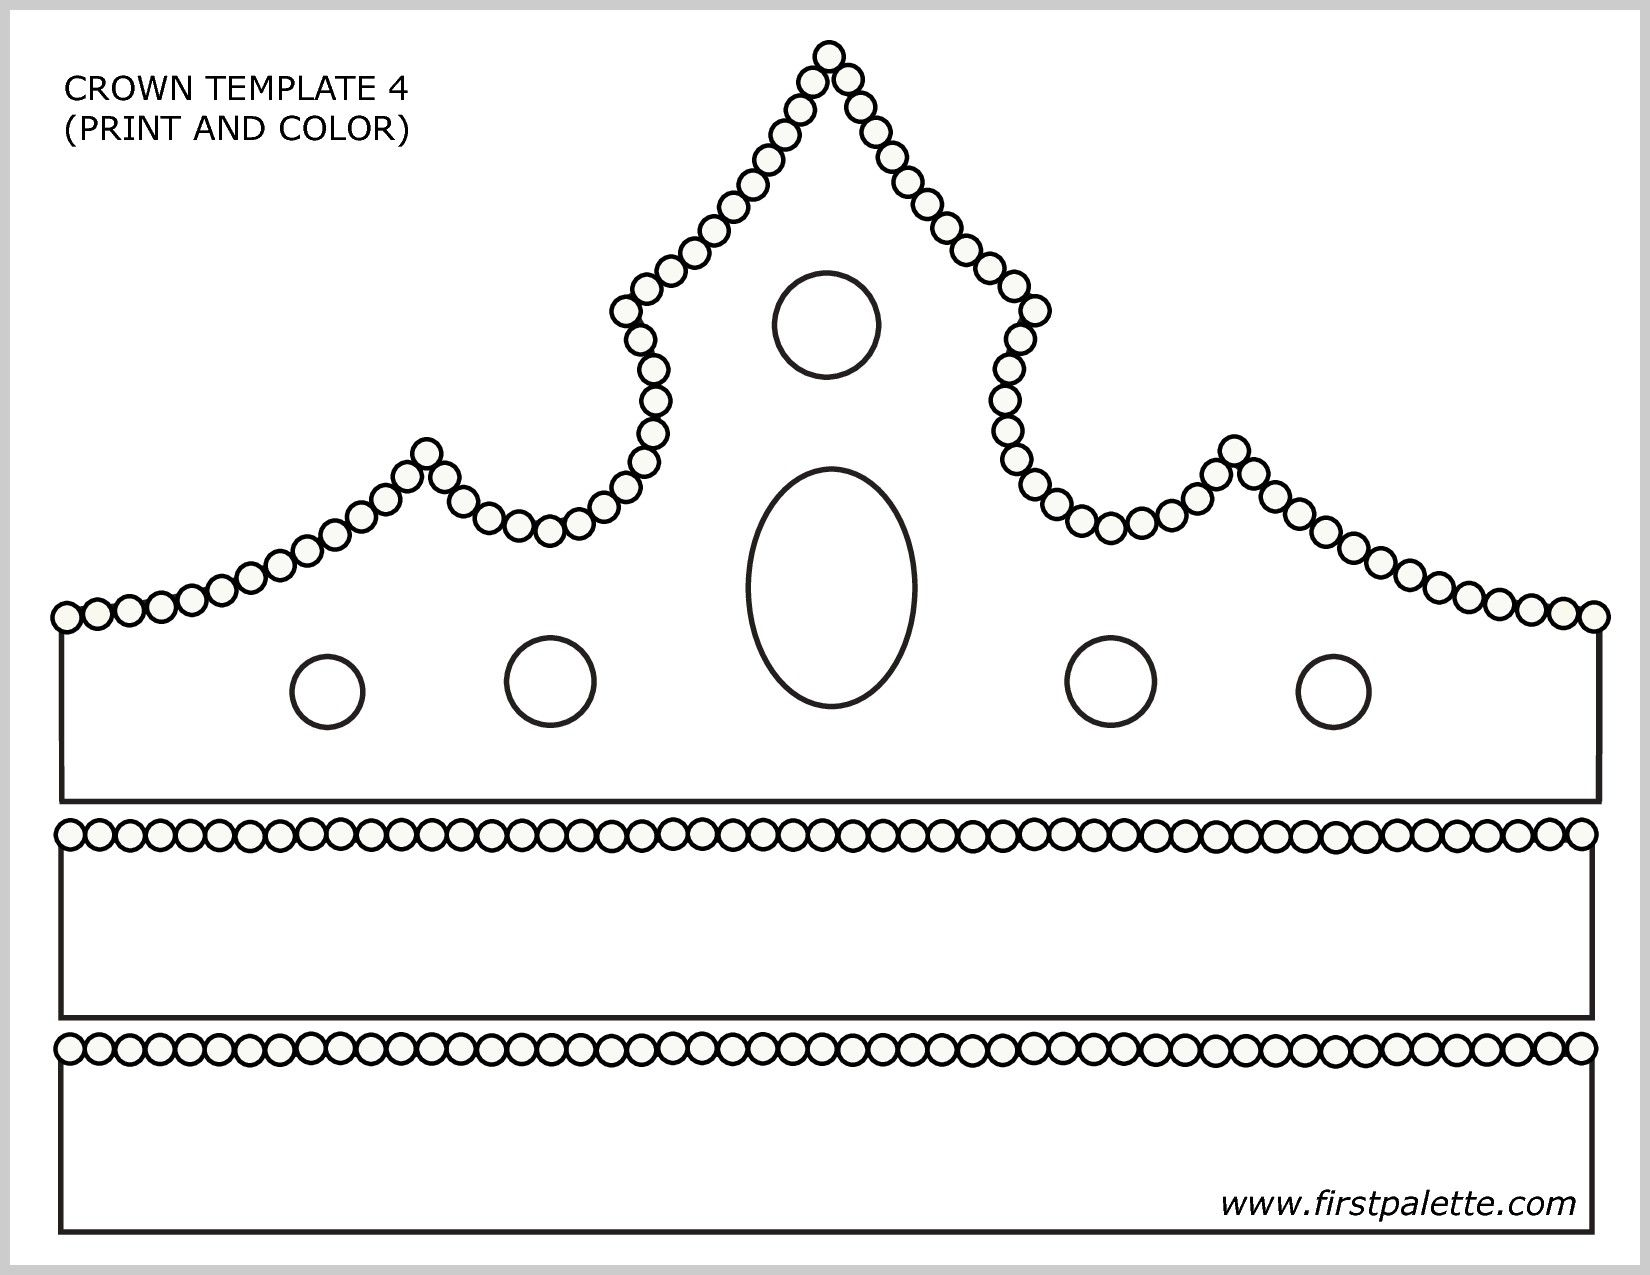 Affordable Paper Crown Template With Images Crown Template